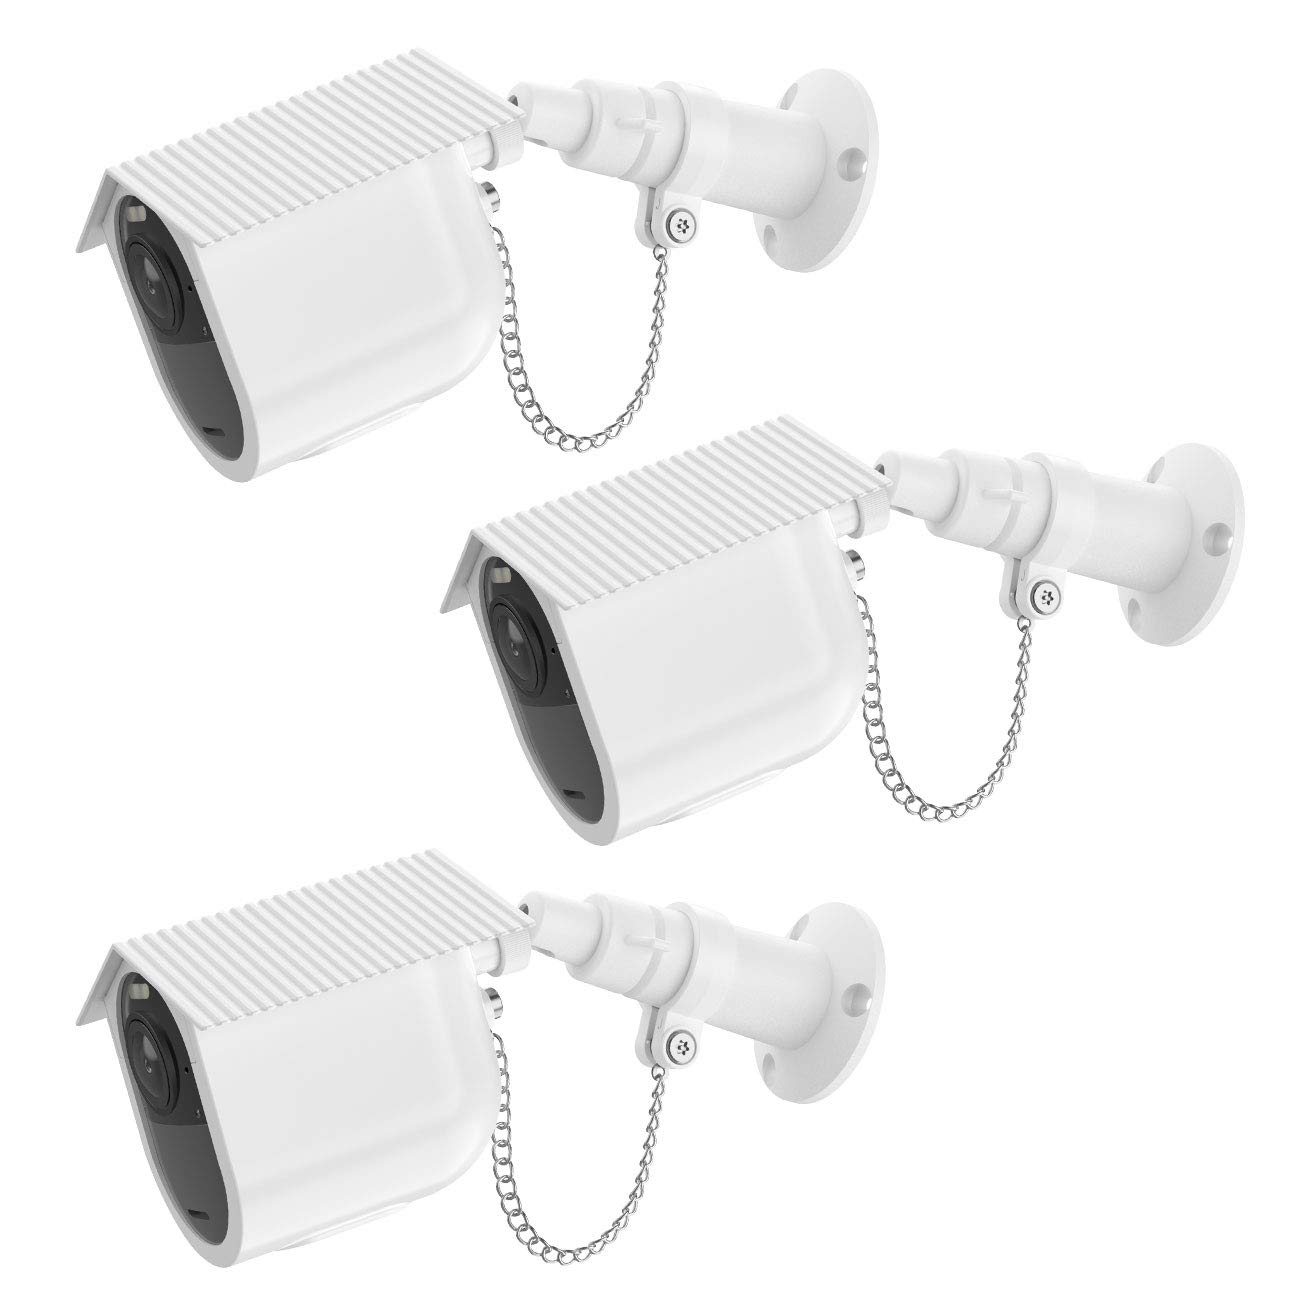 HOLACA Security Outdoor Mount for Arlo Ultra 4K Arlo Pro 3 with Anti-Theft Chain,Protective Housing Case-Extra Protection for Your Arlo Camera. (3 Pack,White) by HOLACA